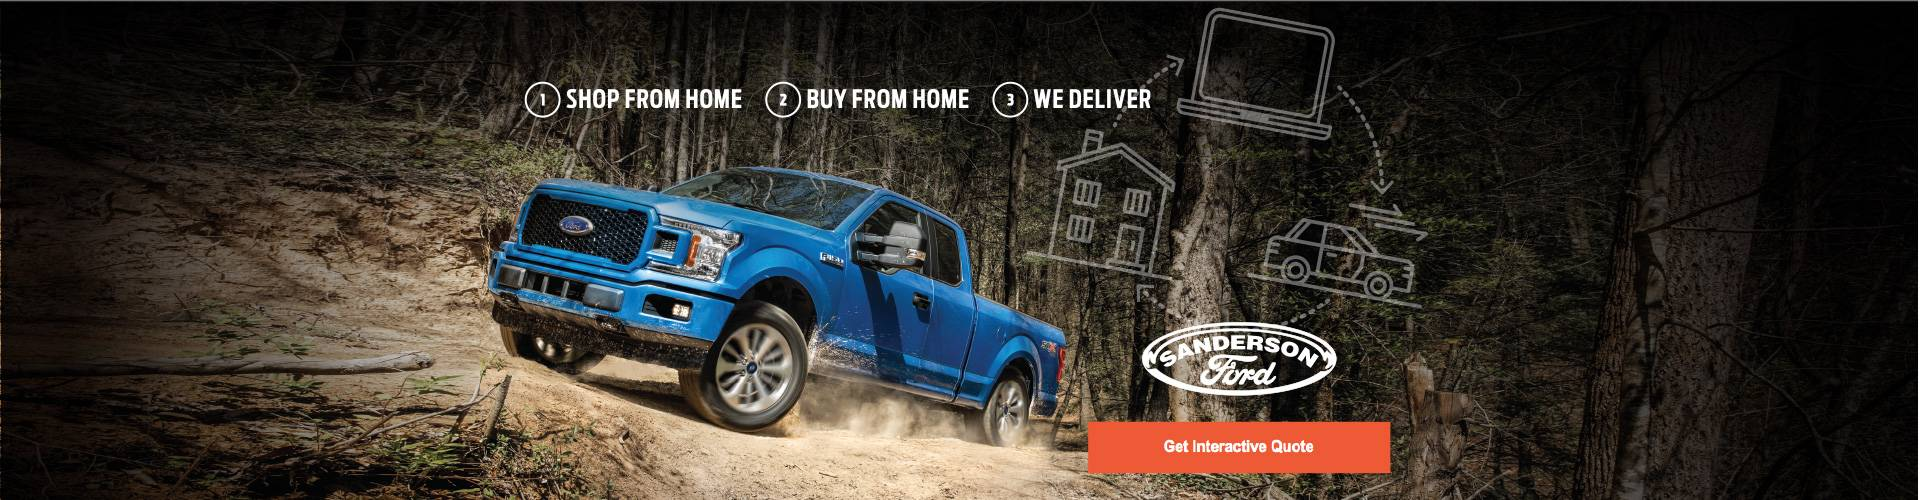 Shop From Home at Sanderson Ford in Glendale, AZ